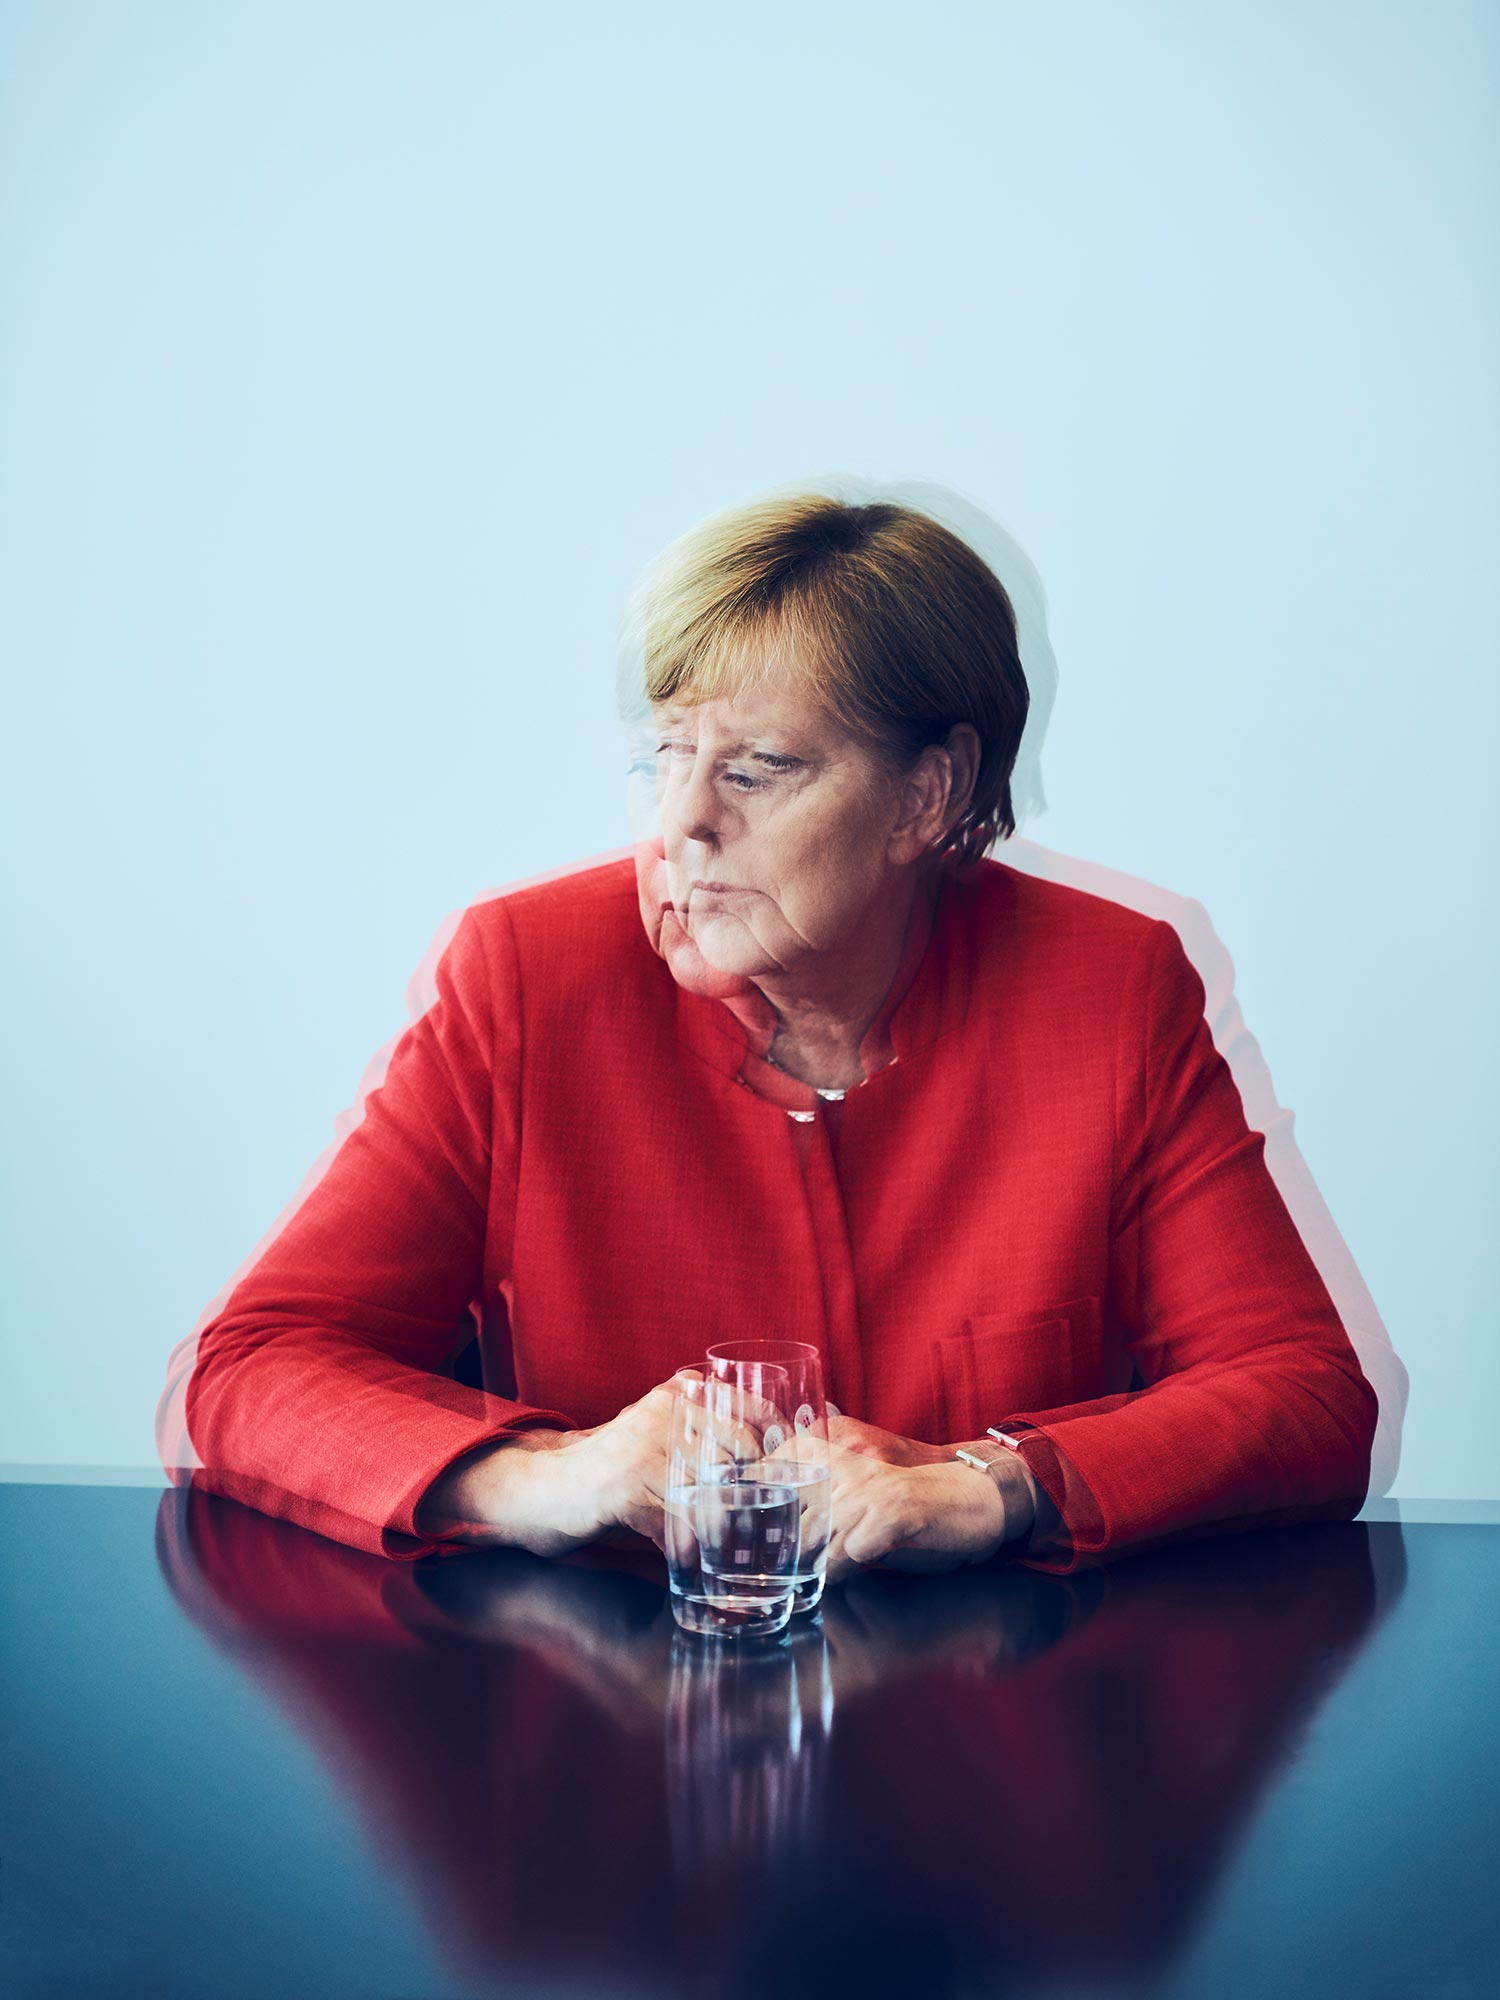 urban zintel photography — angela merkel III